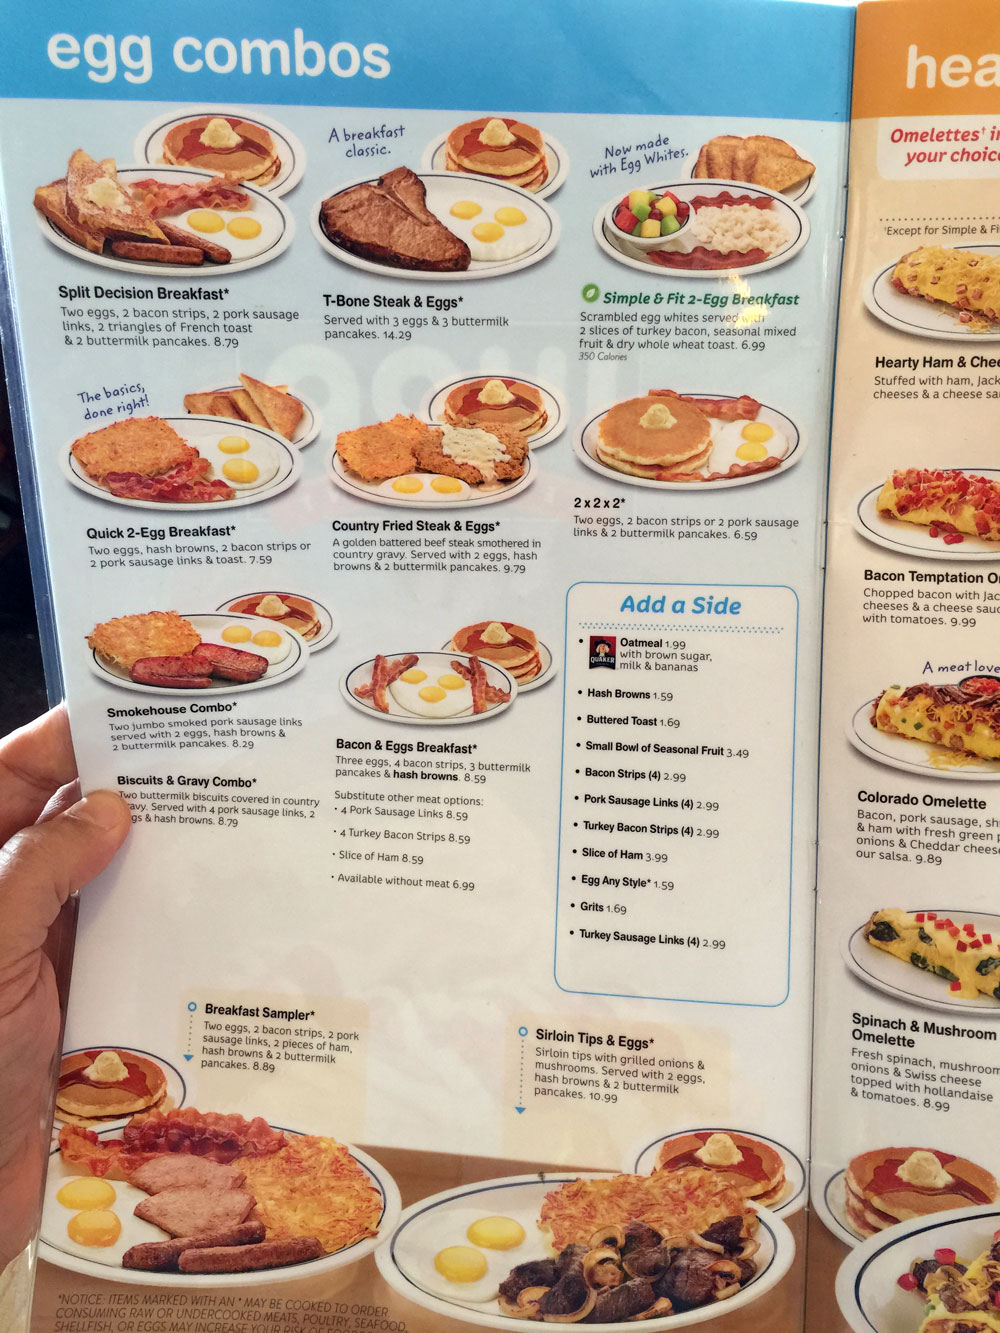 how to get free pancakes at ihop